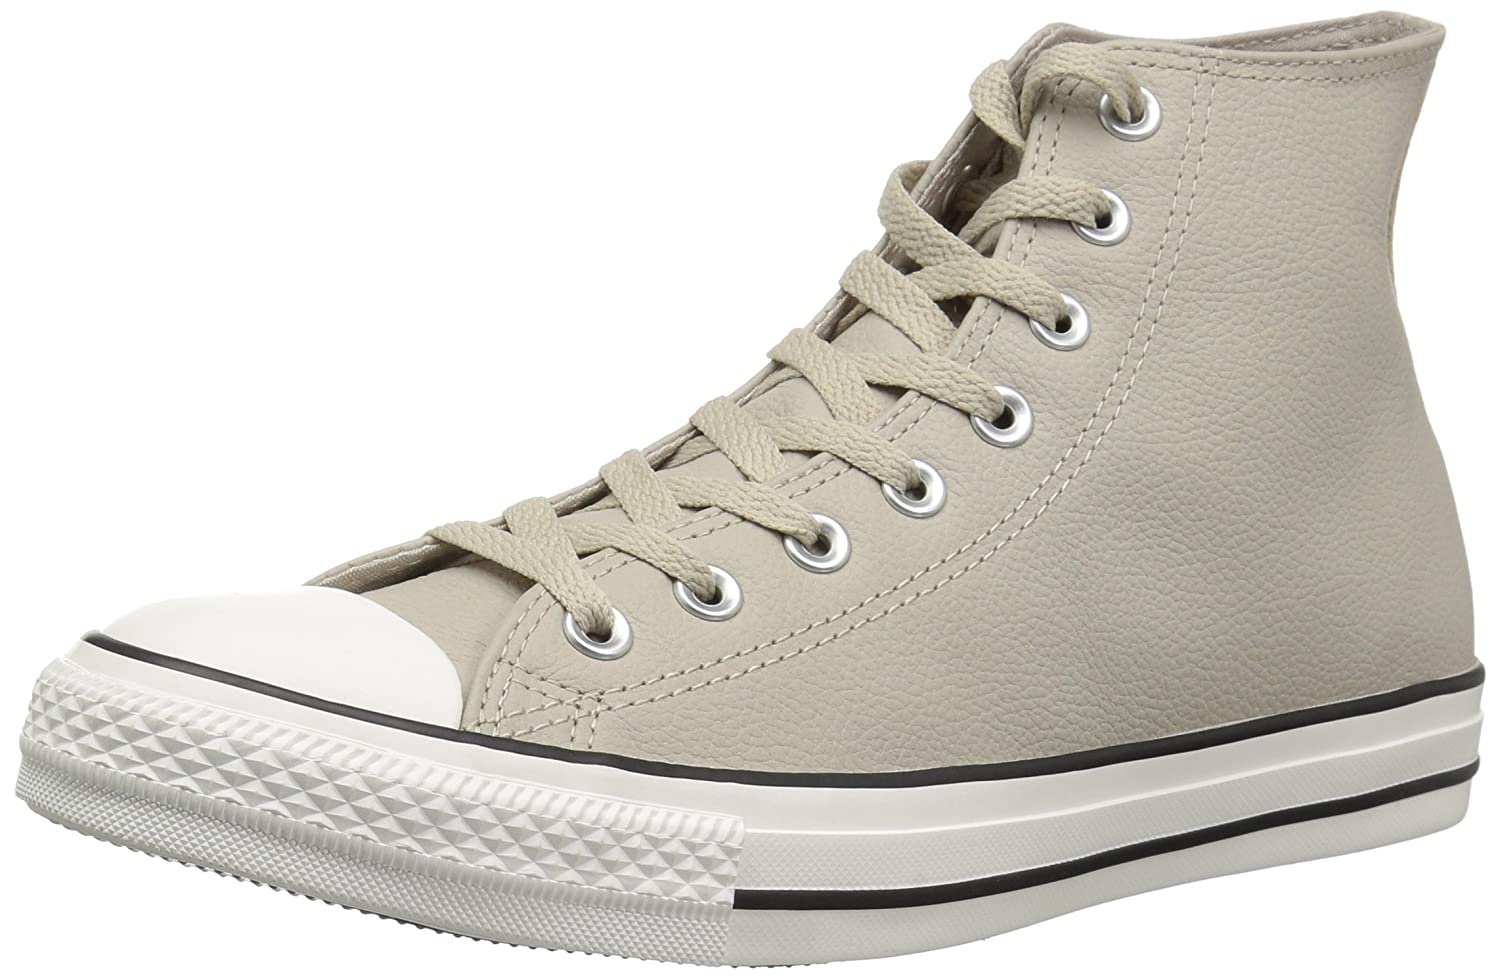 Converse Chuck Taylor All Star Tumbled Leather High Top Sneaker B07CQ5B3WS 7 M US|Papyrus/Papyrus/Egret